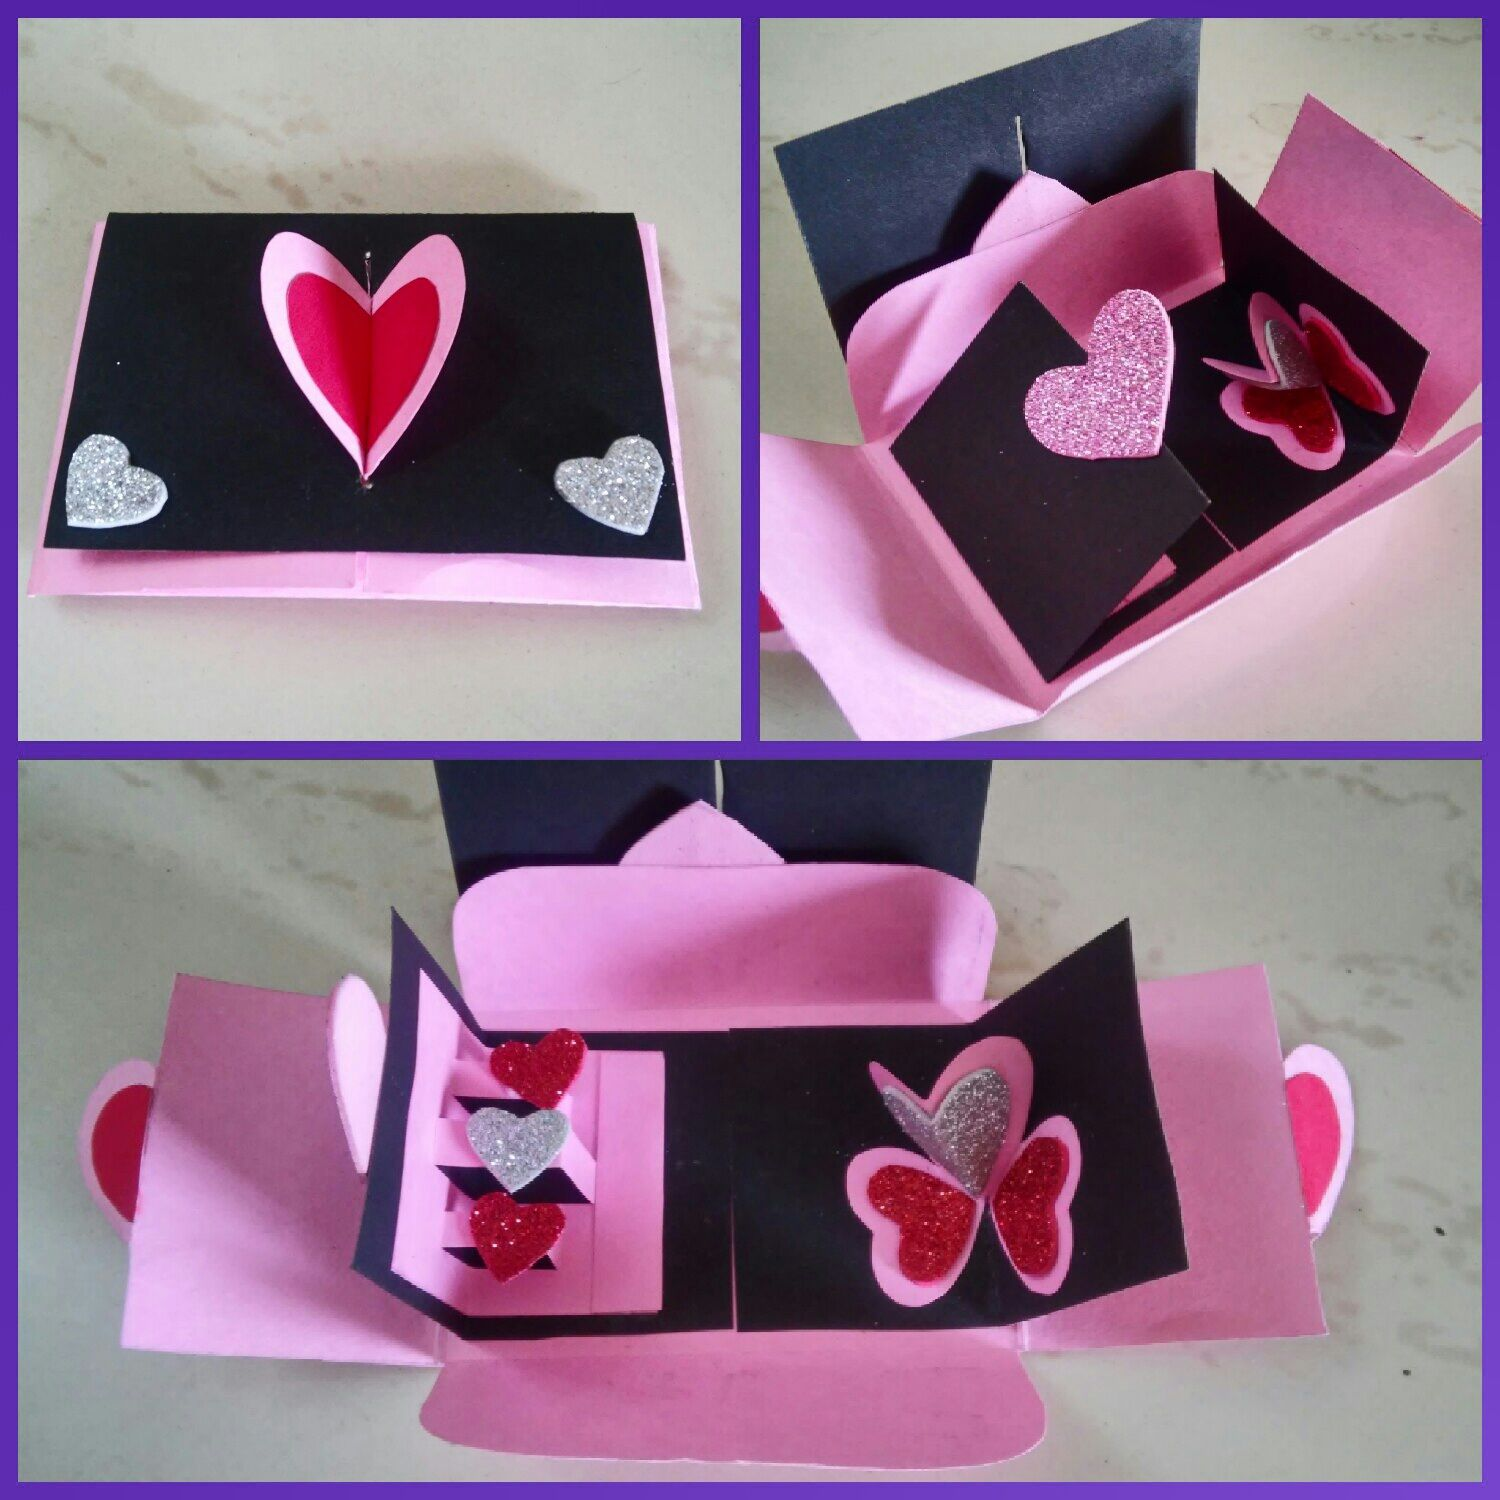 How To Make Handmade Pop Up Valentine Heart Card With A Lock